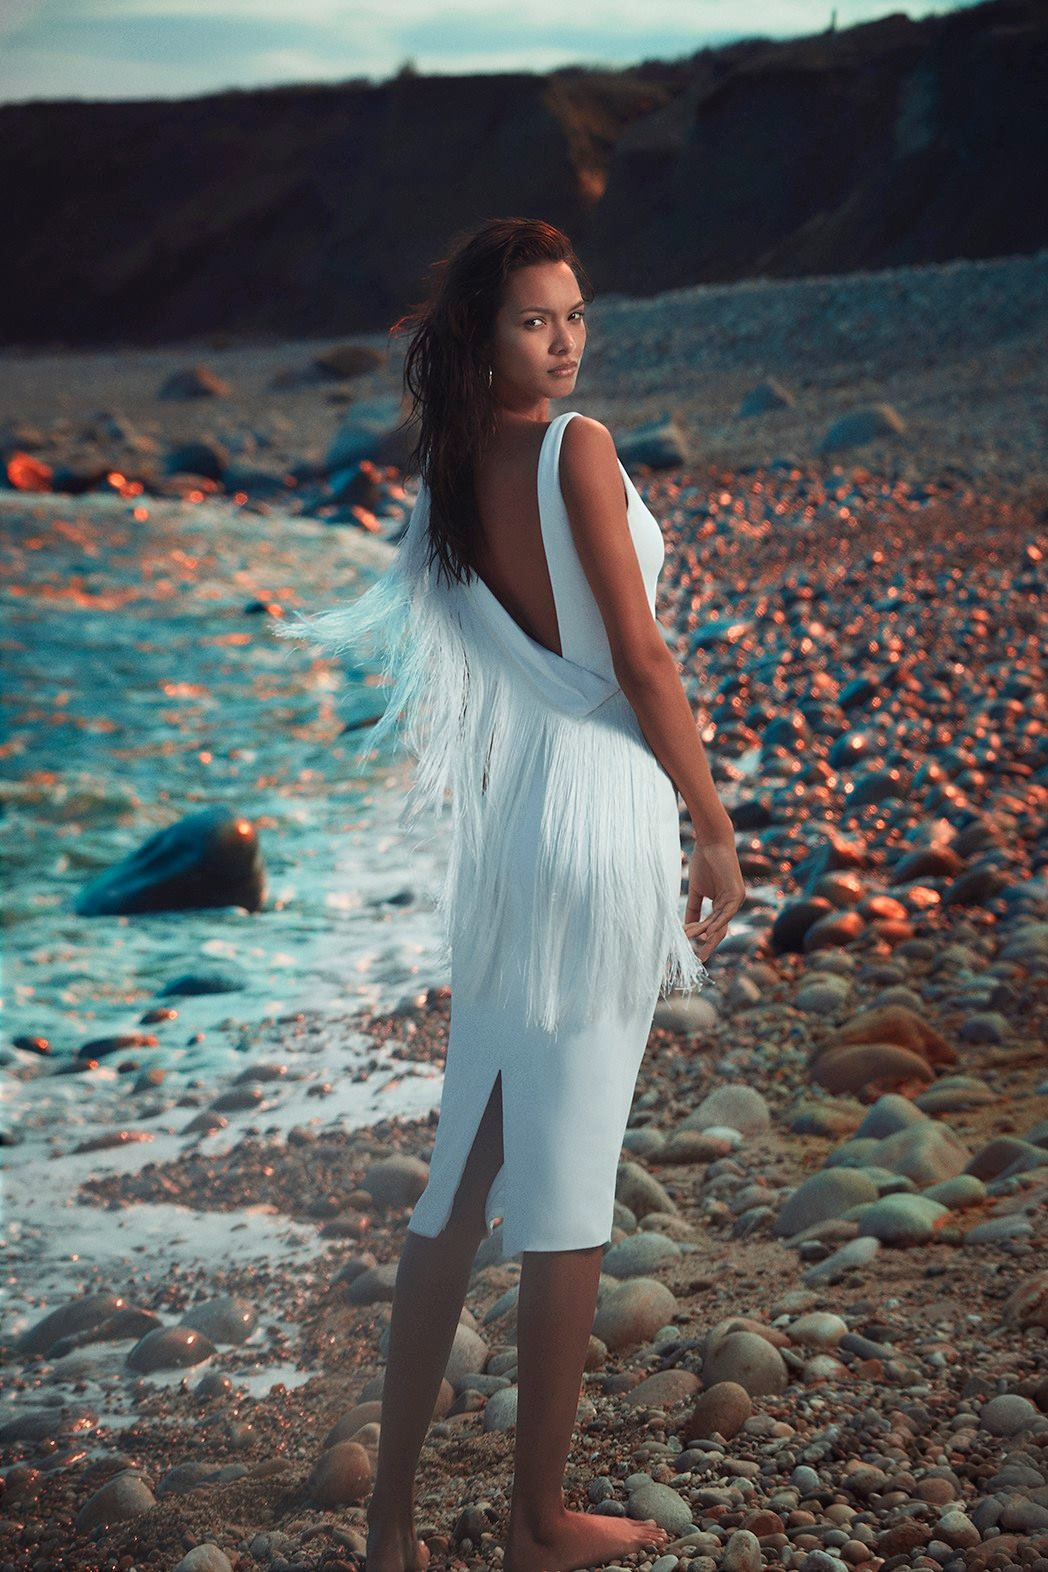 Lais Ribeiro wears white fringed dress in Cushnie et Ochs' pre-fall 2018 campaign